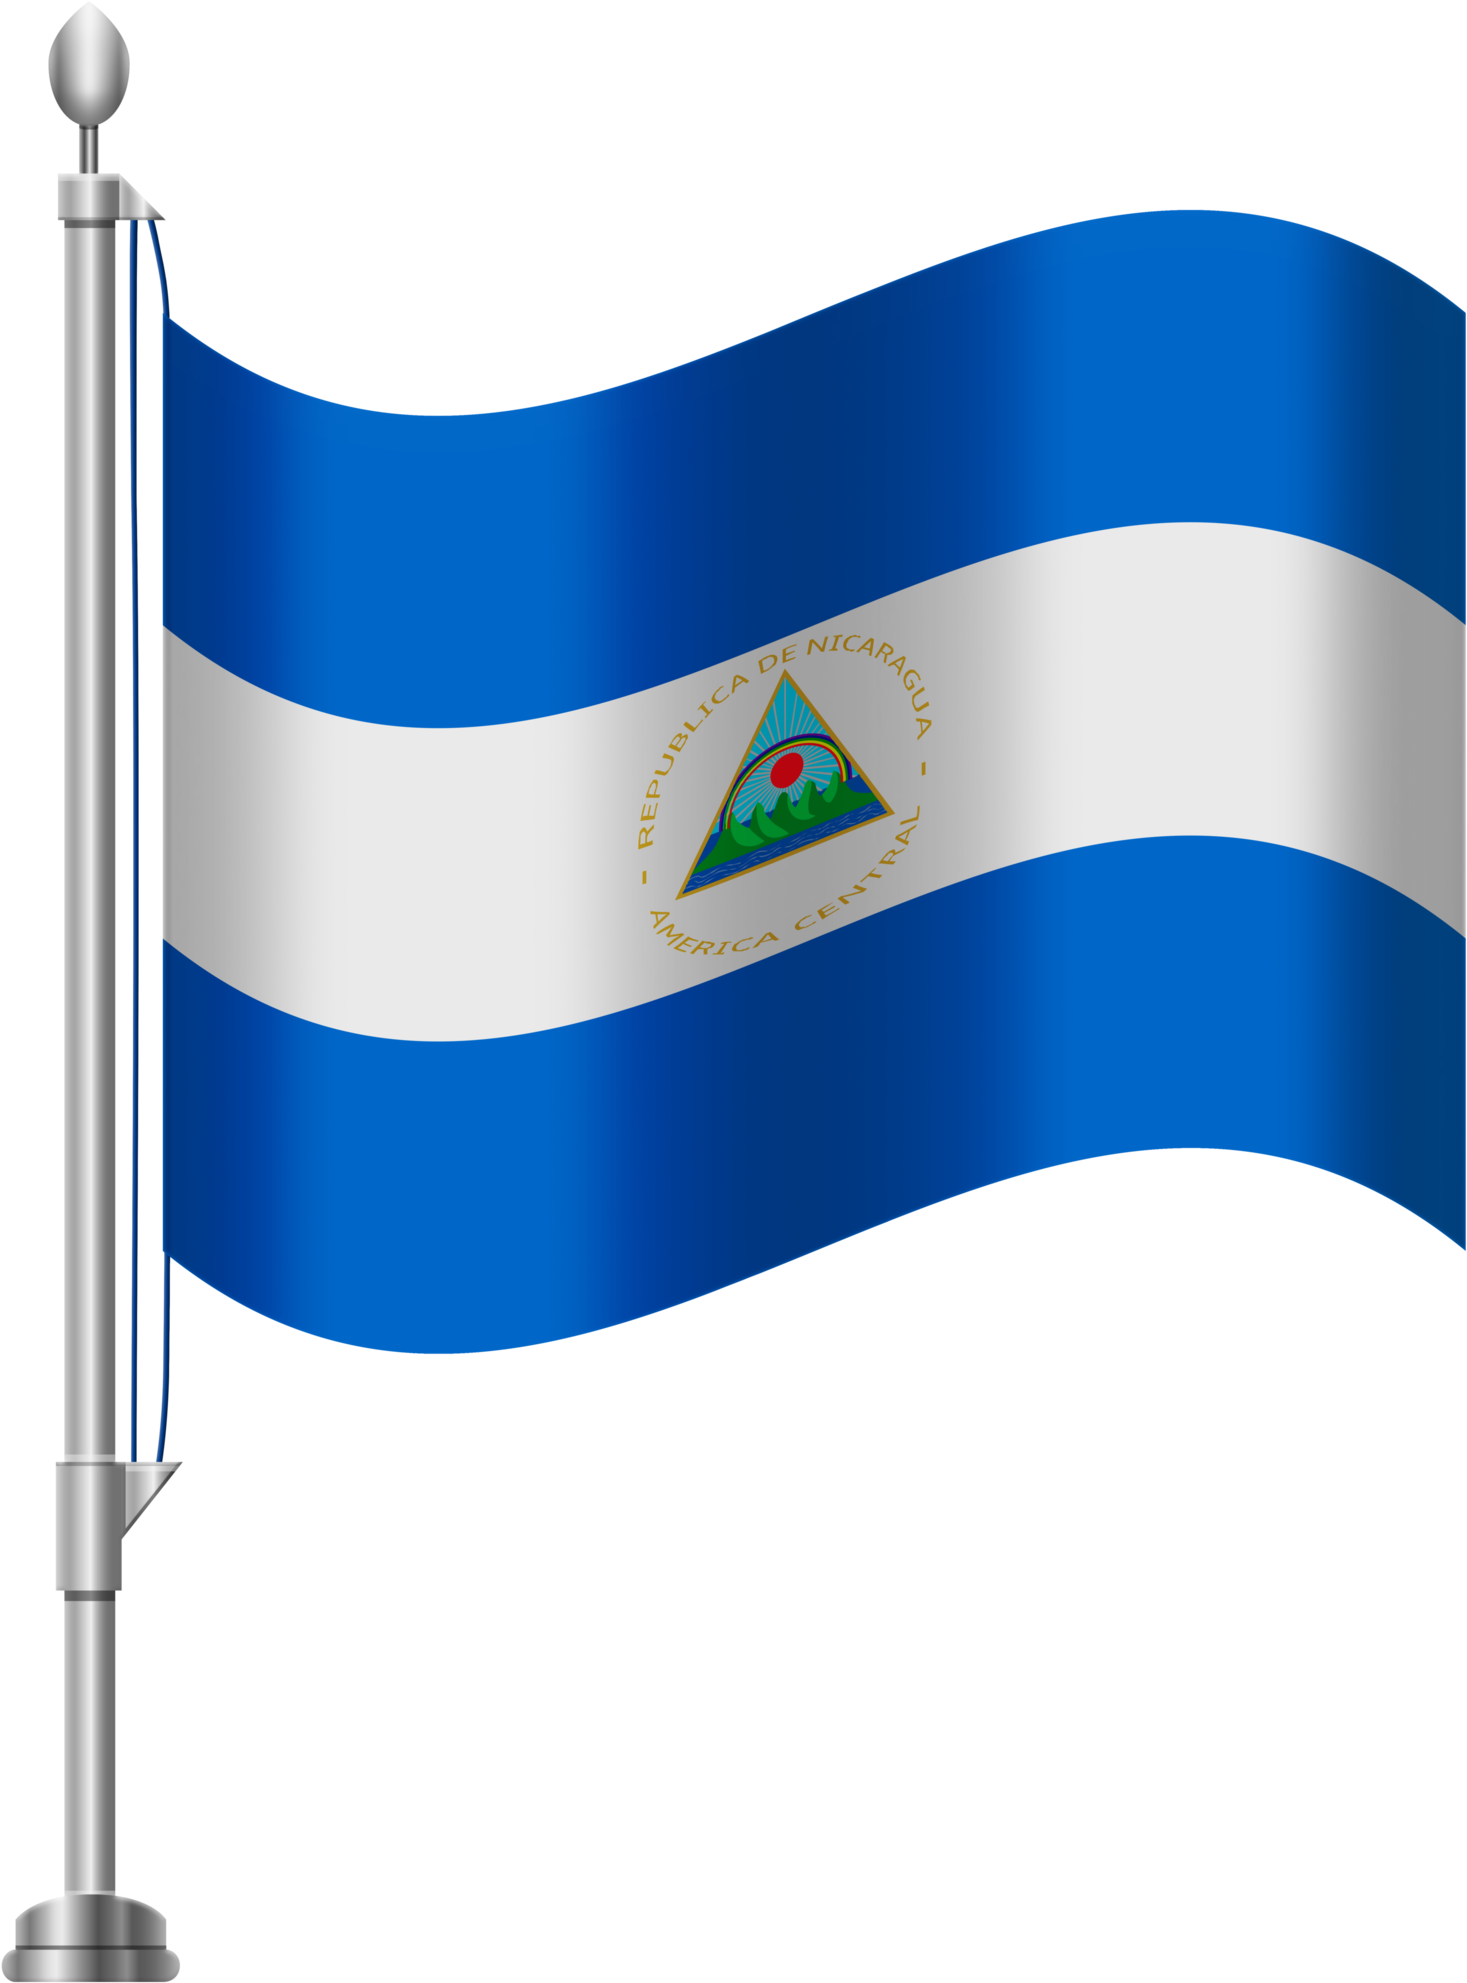 Download And Share Clipart About El Salvador Flag Png Find More High Quality Free Transparent Png Clipart Images El Salvador Flag Clip Art Mens Fashion Casual